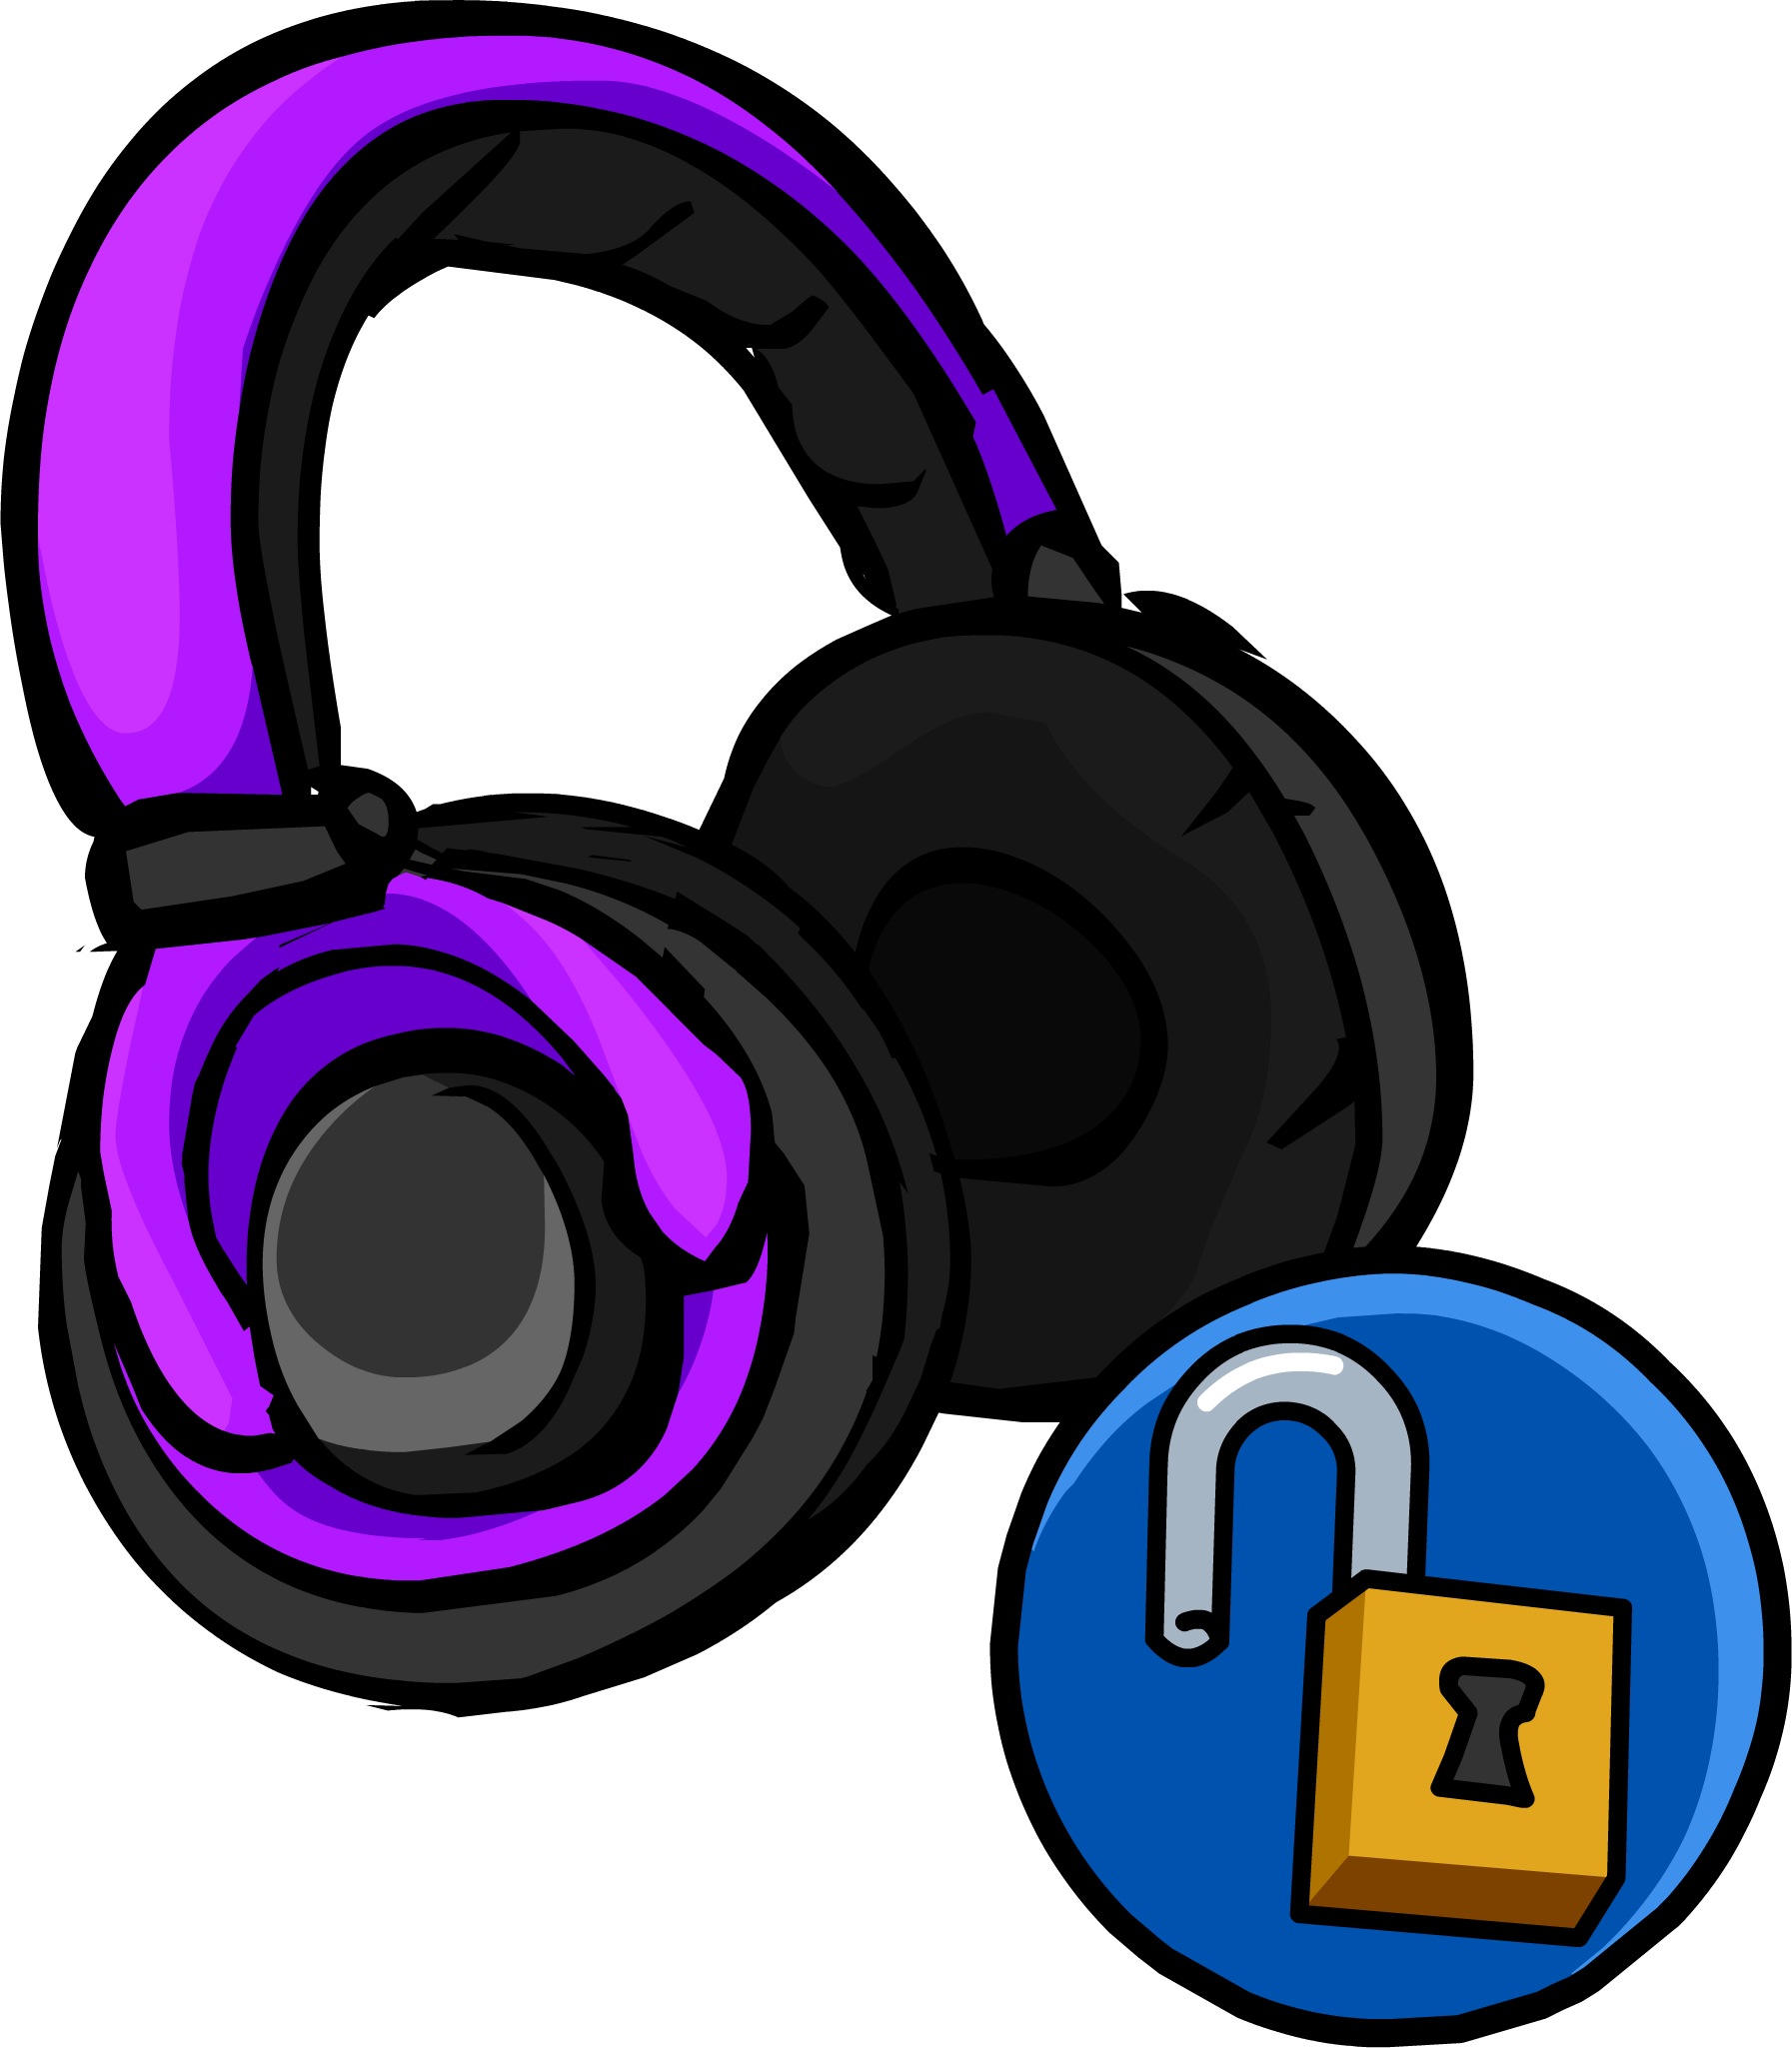 Purple clipart headphone. Headphones club penguin wiki